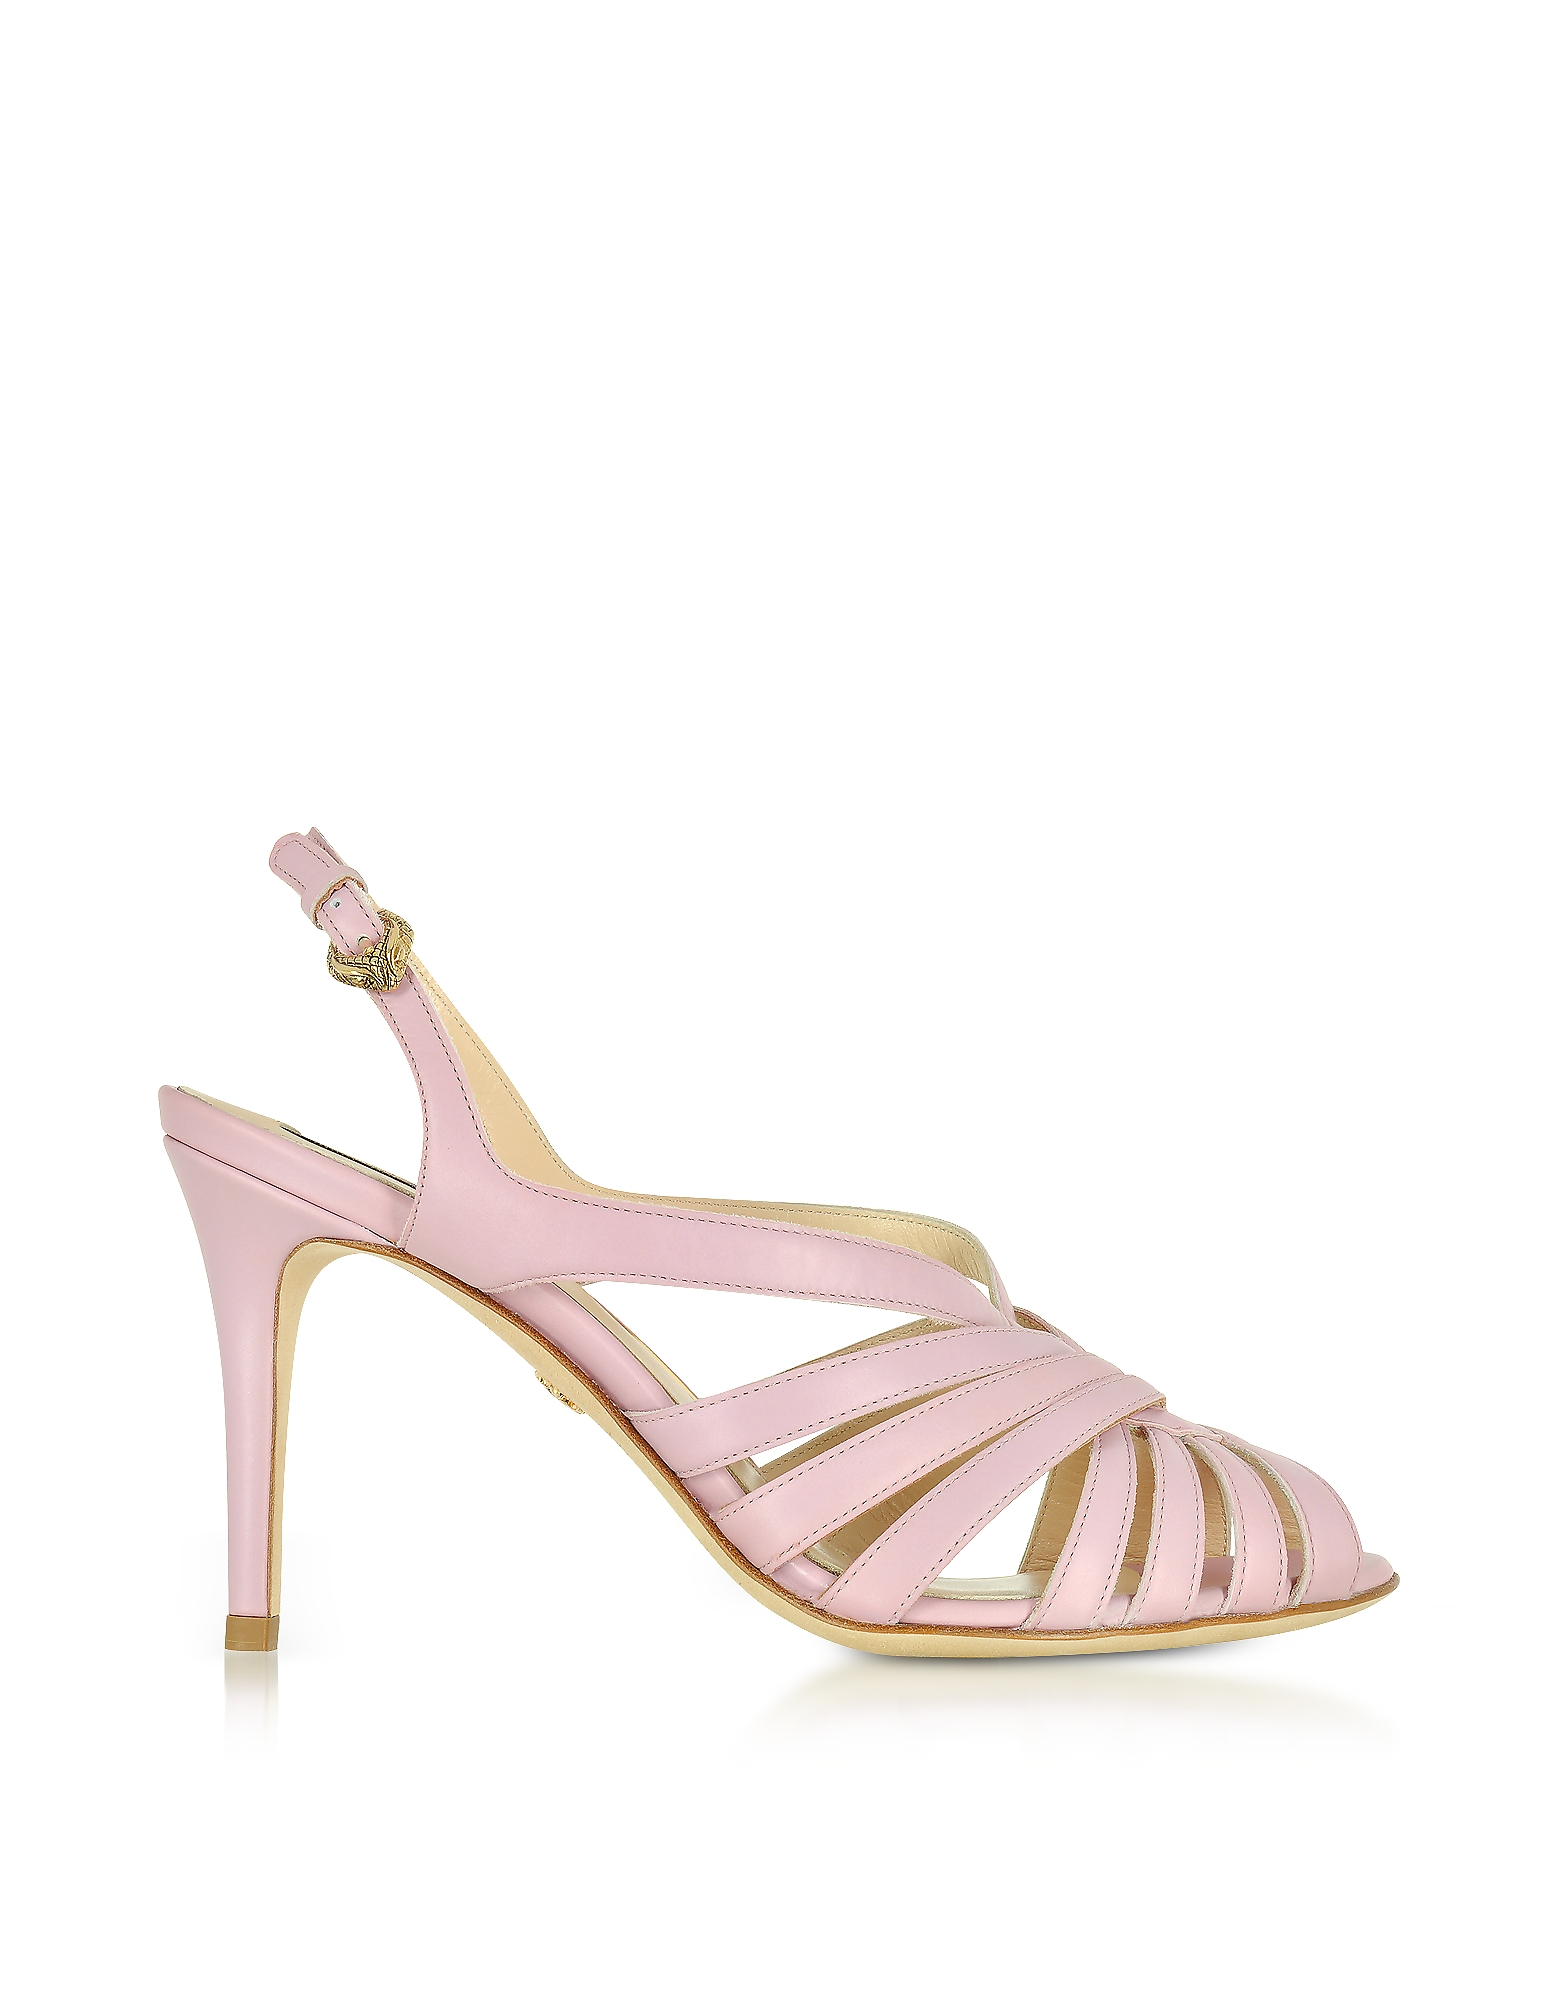 Roberto Cavalli Shoes, Mauve Leather Sandals